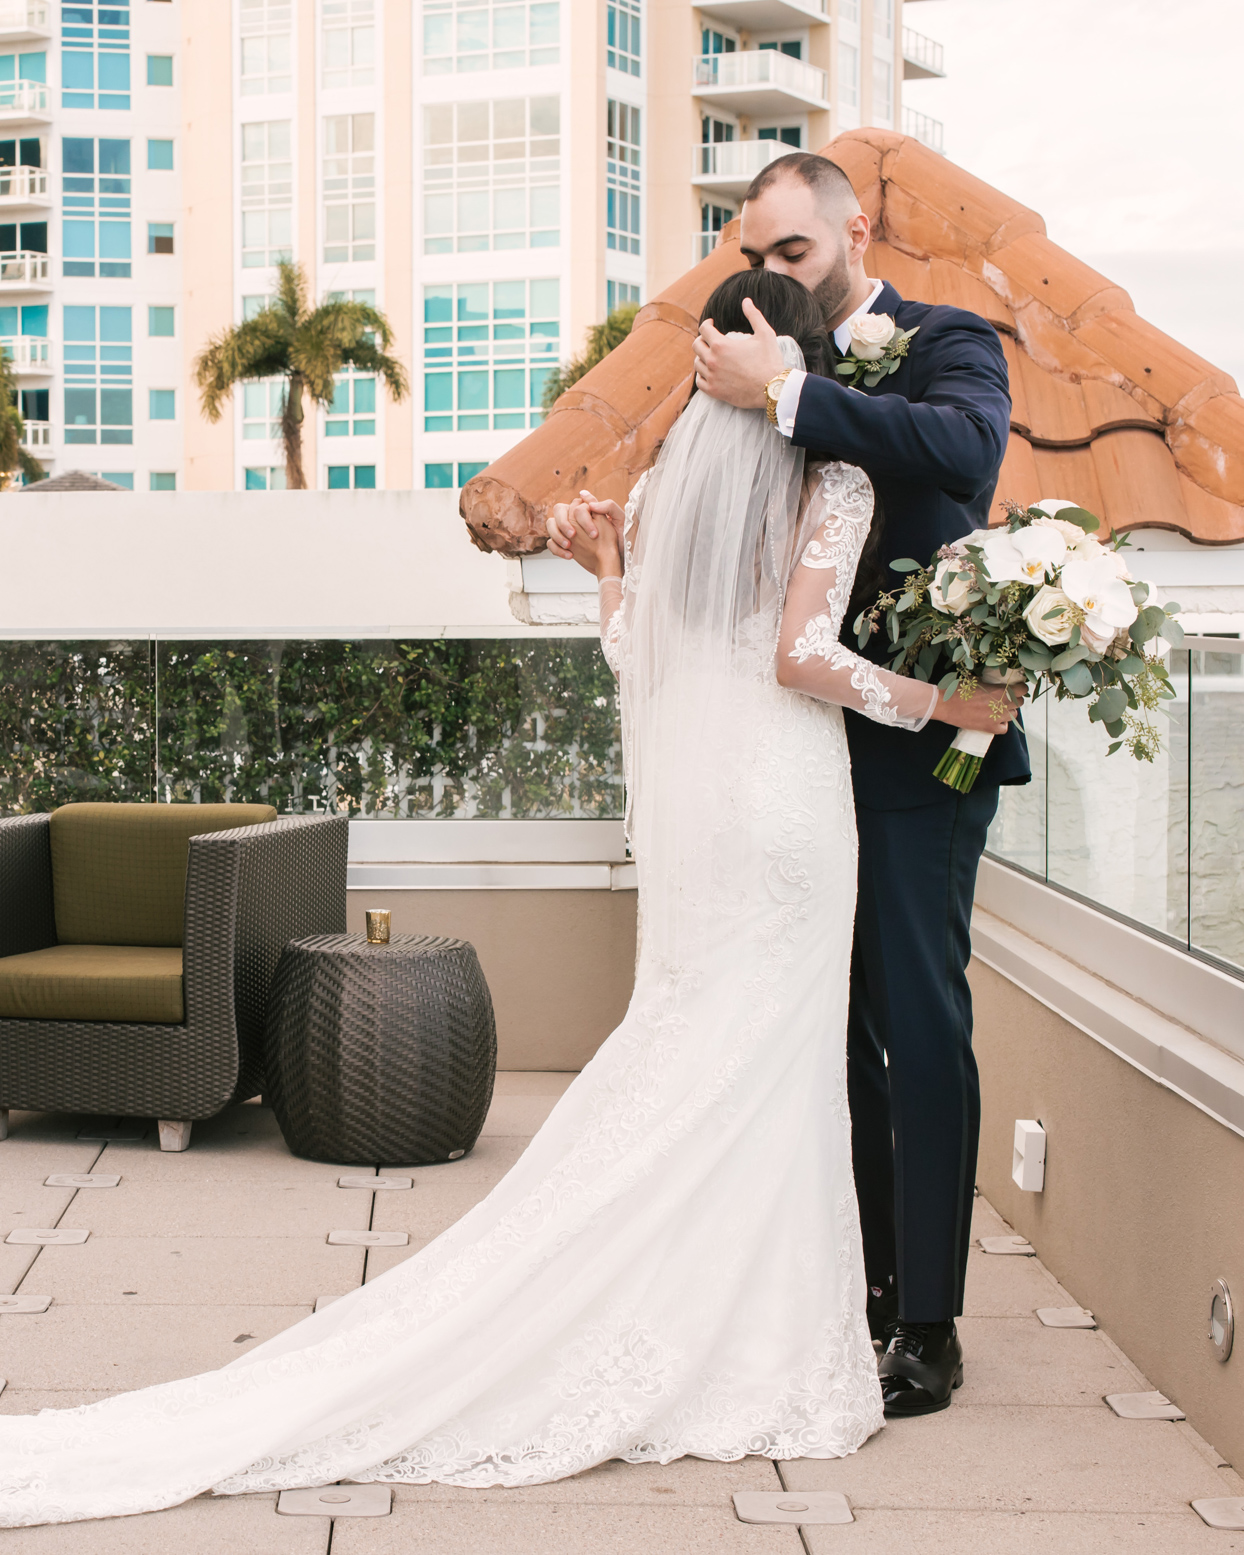 first look embrace on roof with hotel view